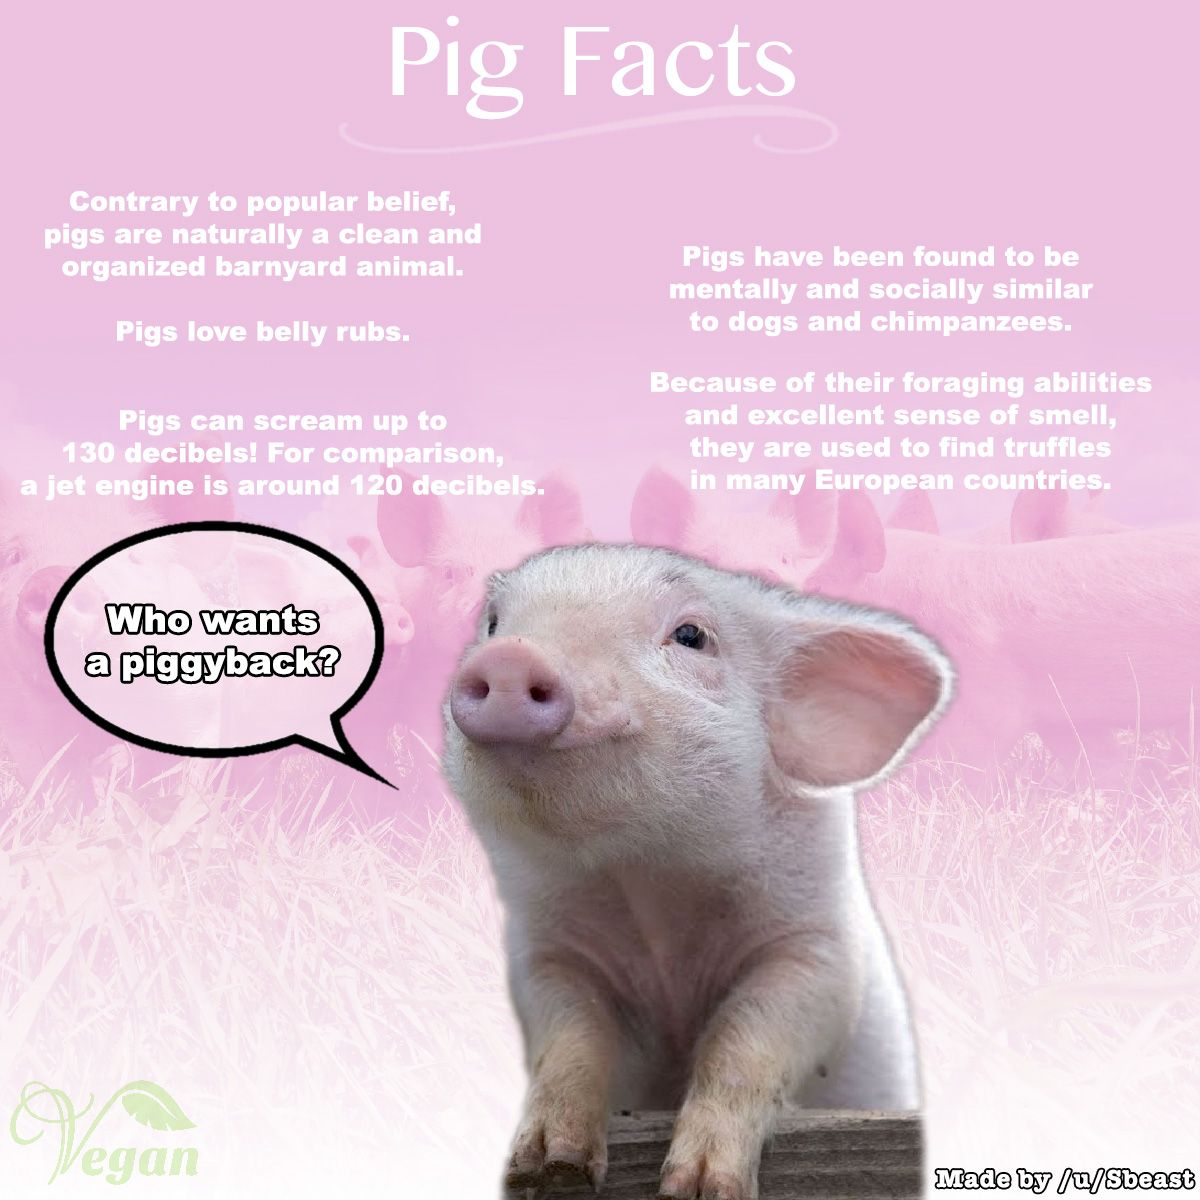 Pig Facts Pig Facts Baby Pigs Pig